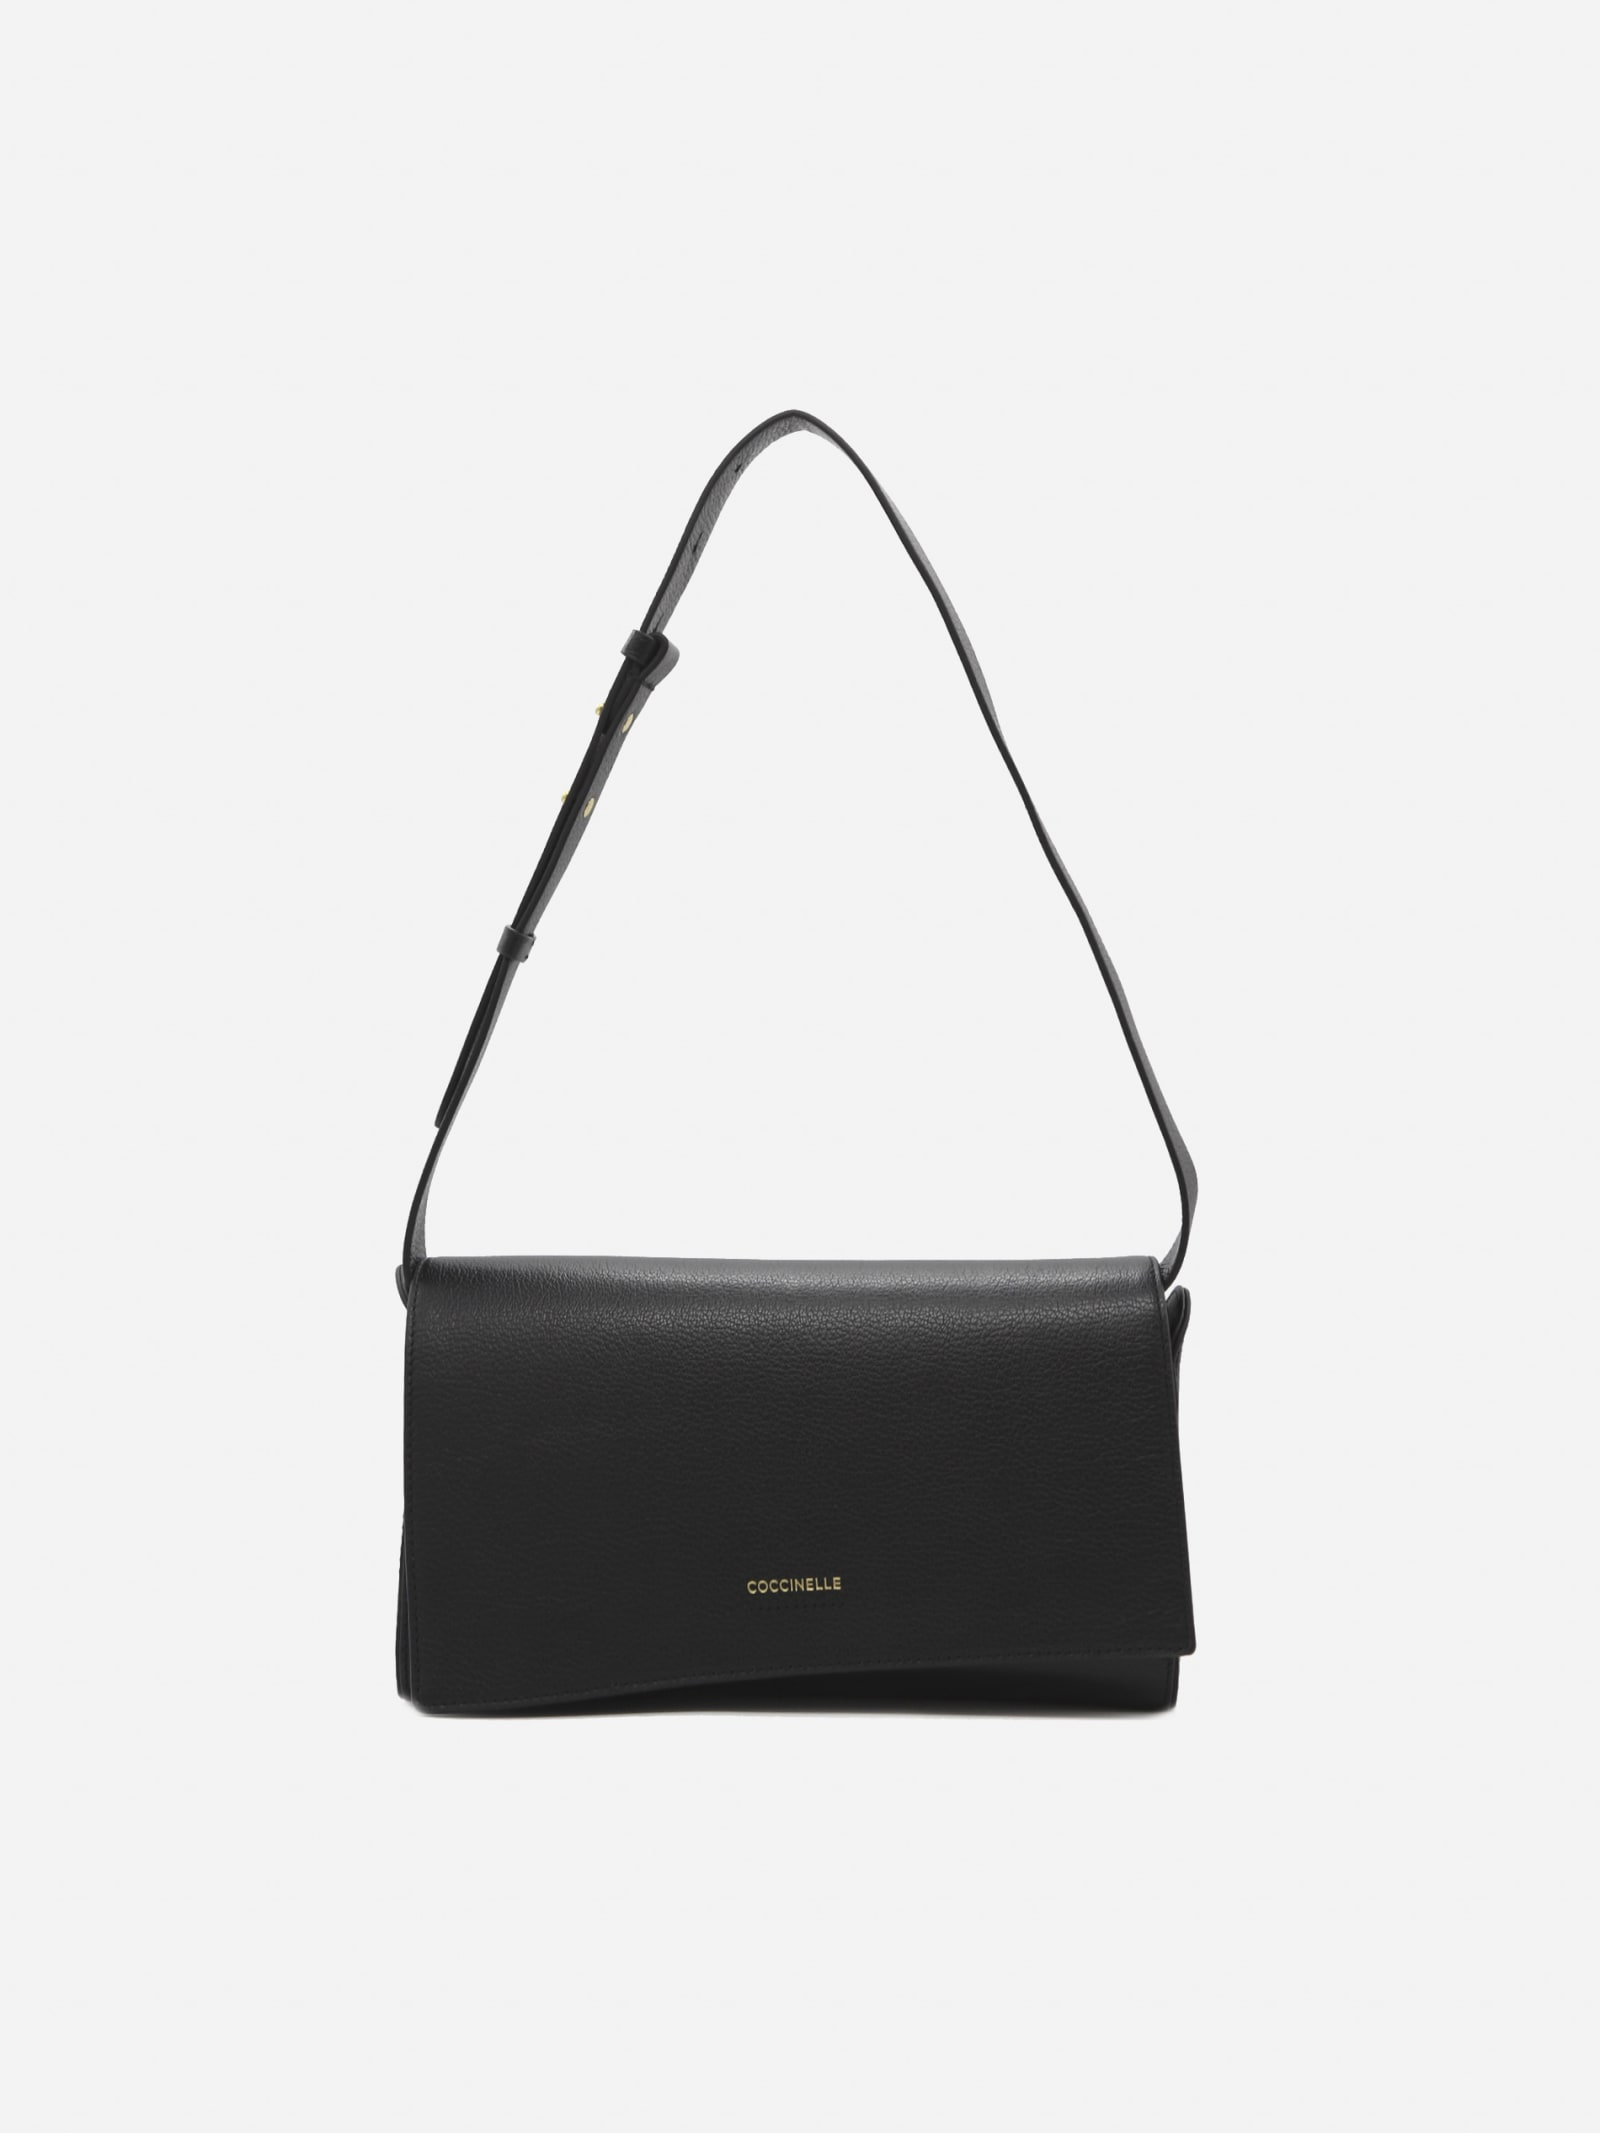 Josephine Shoulder Bag In Grained Leather